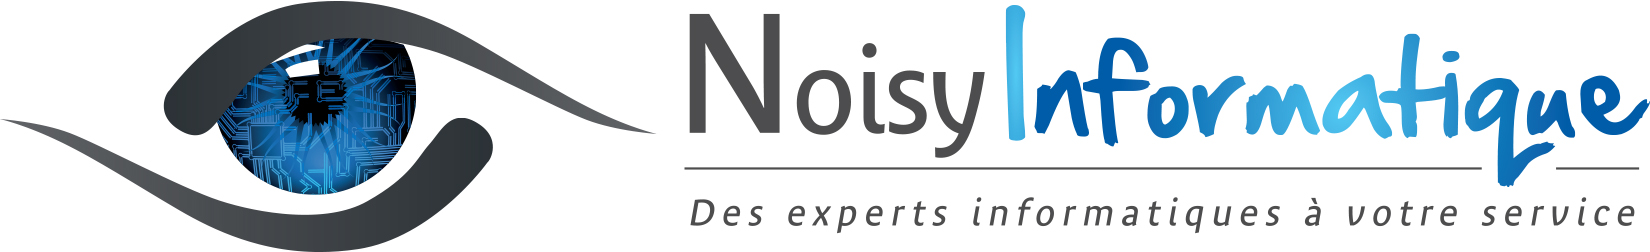 Noisy-Informatique